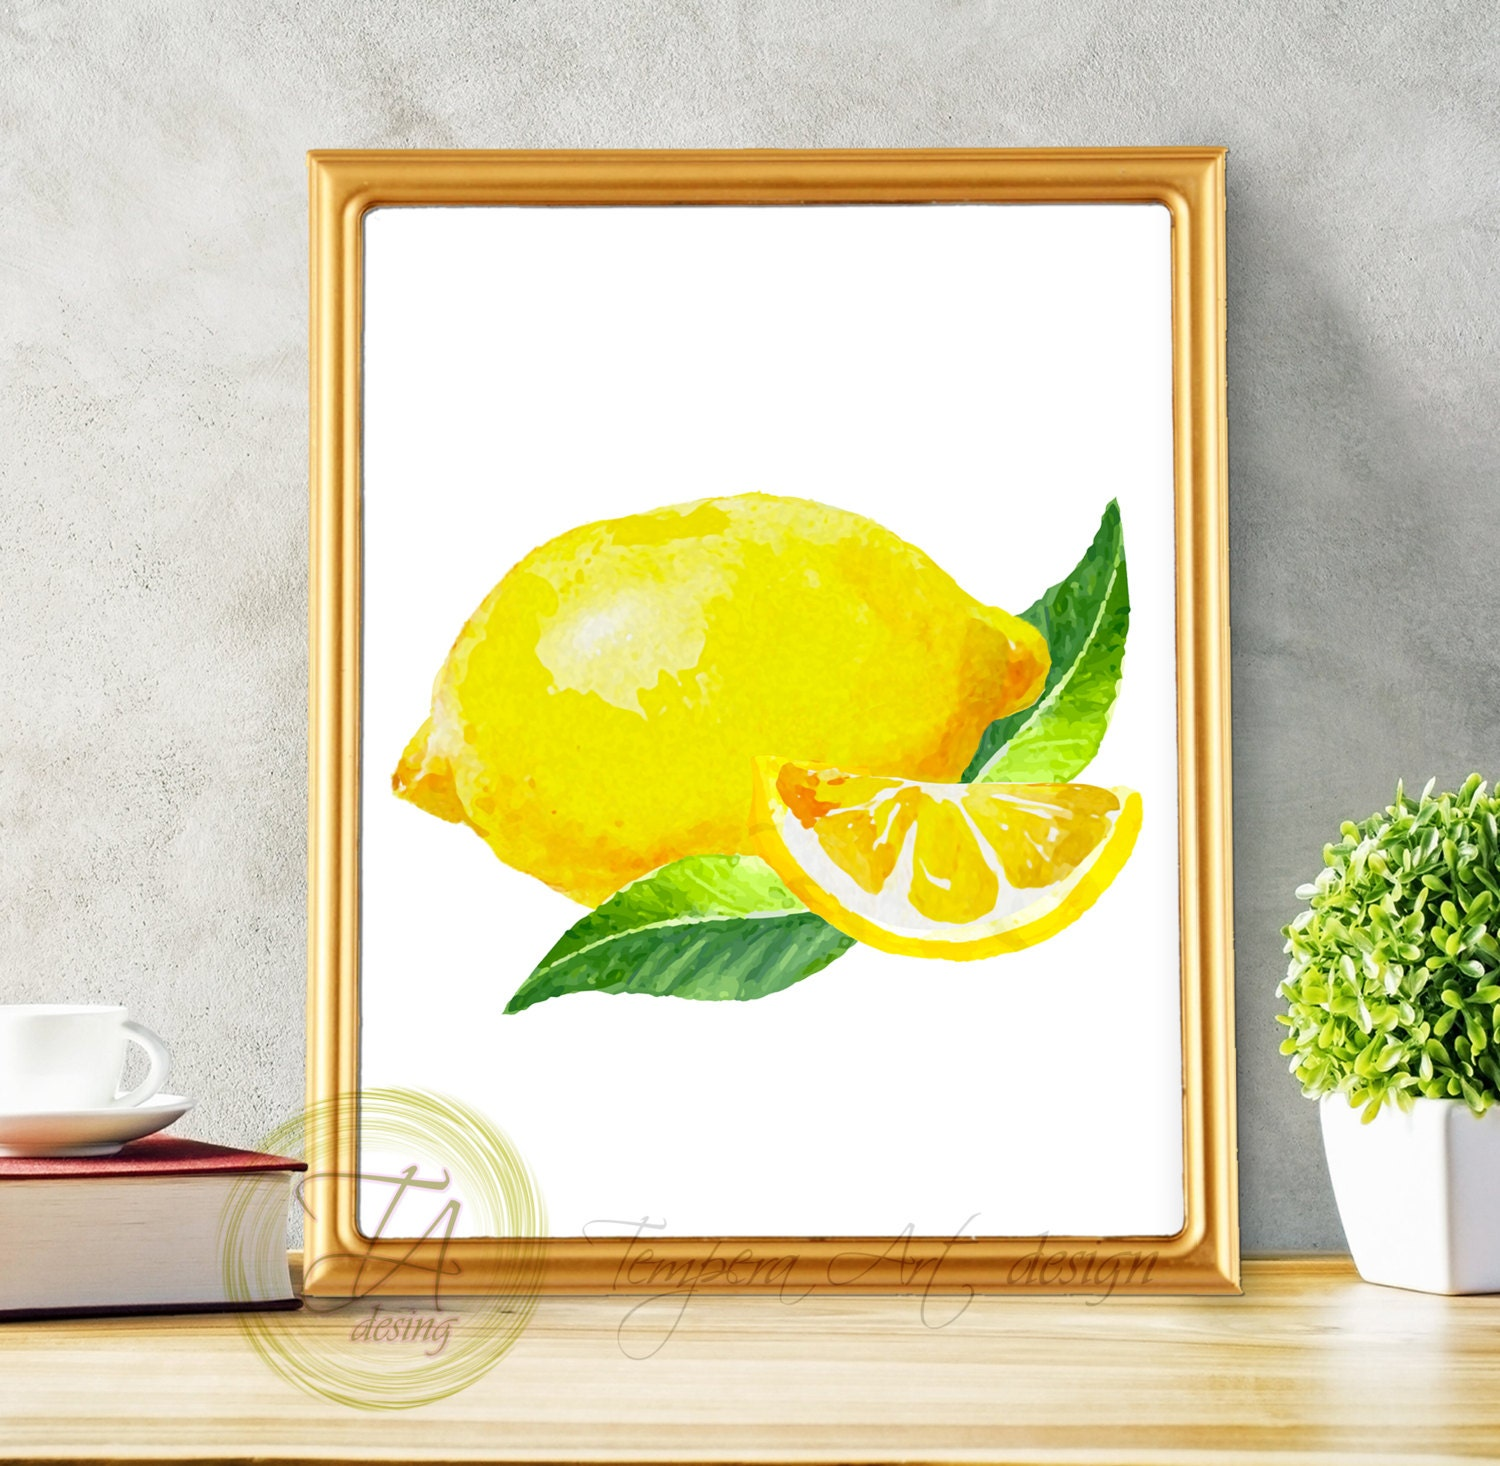 Lemon Print Lemon Decor Lemon Wall Art Kitchen Print Lemon